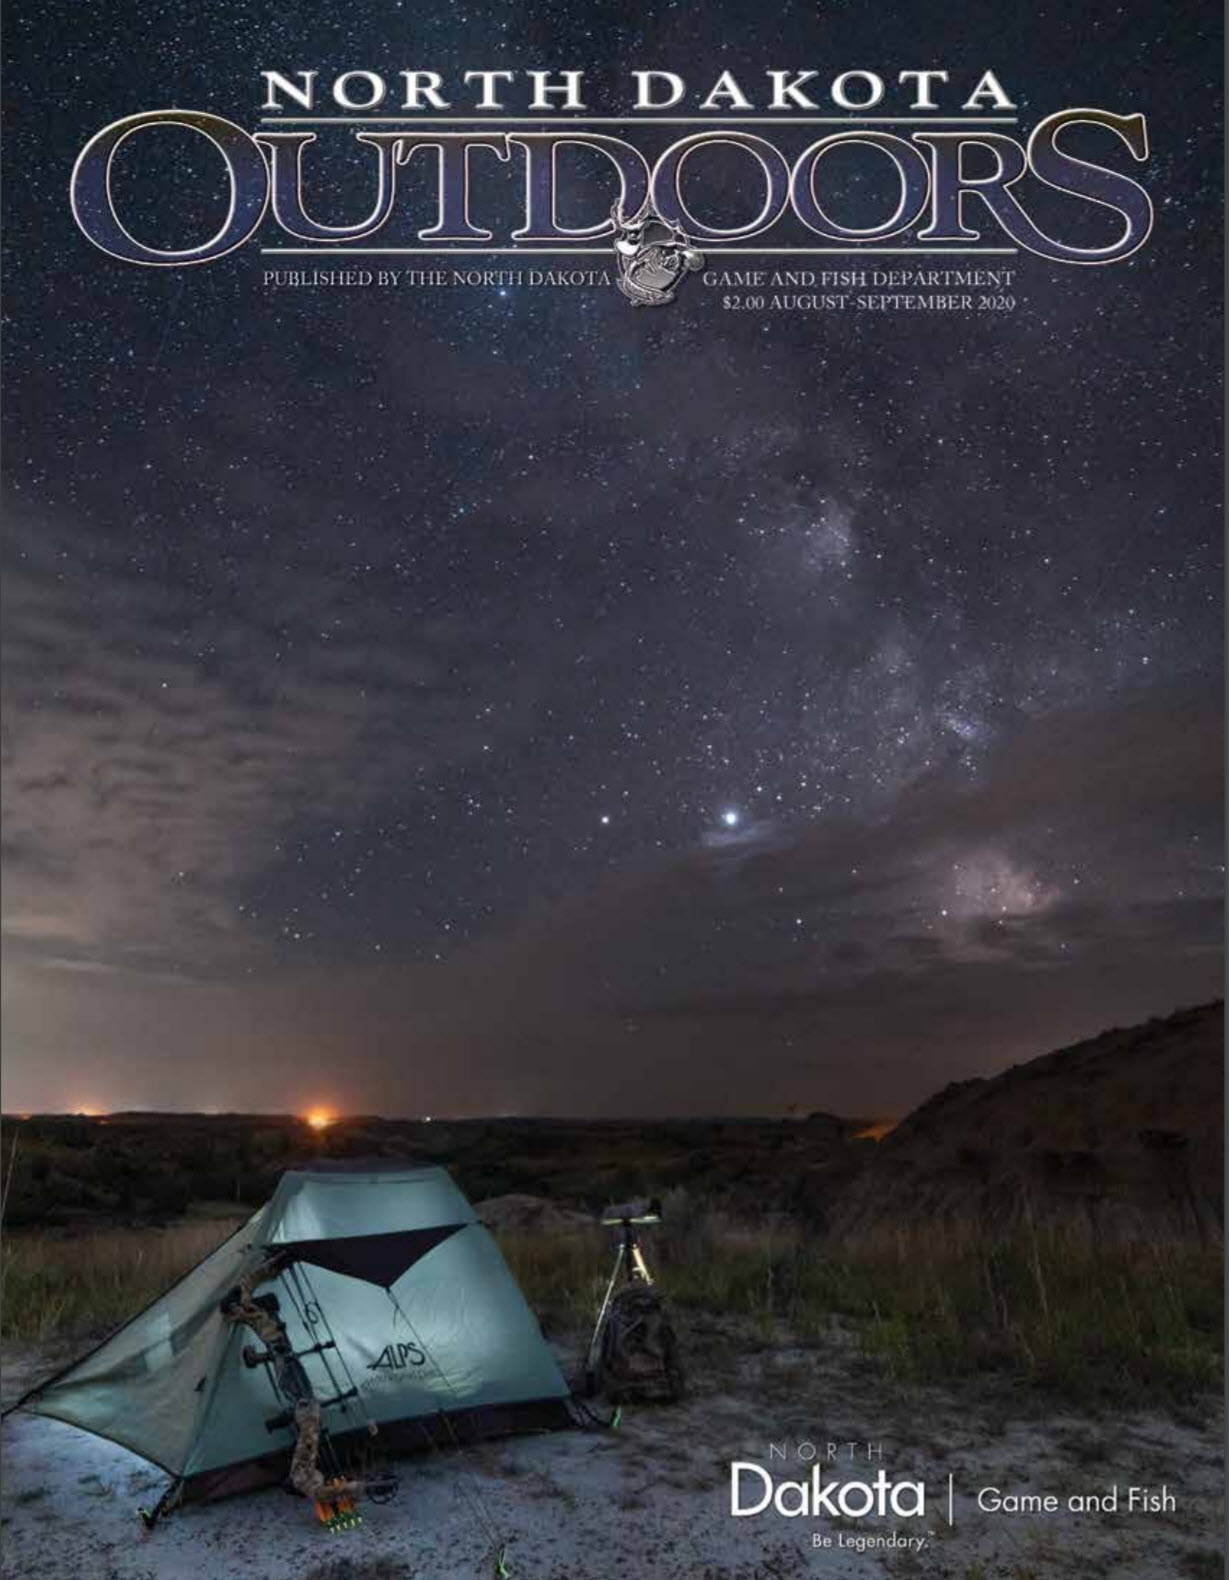 Magazine cover - tent with night sky